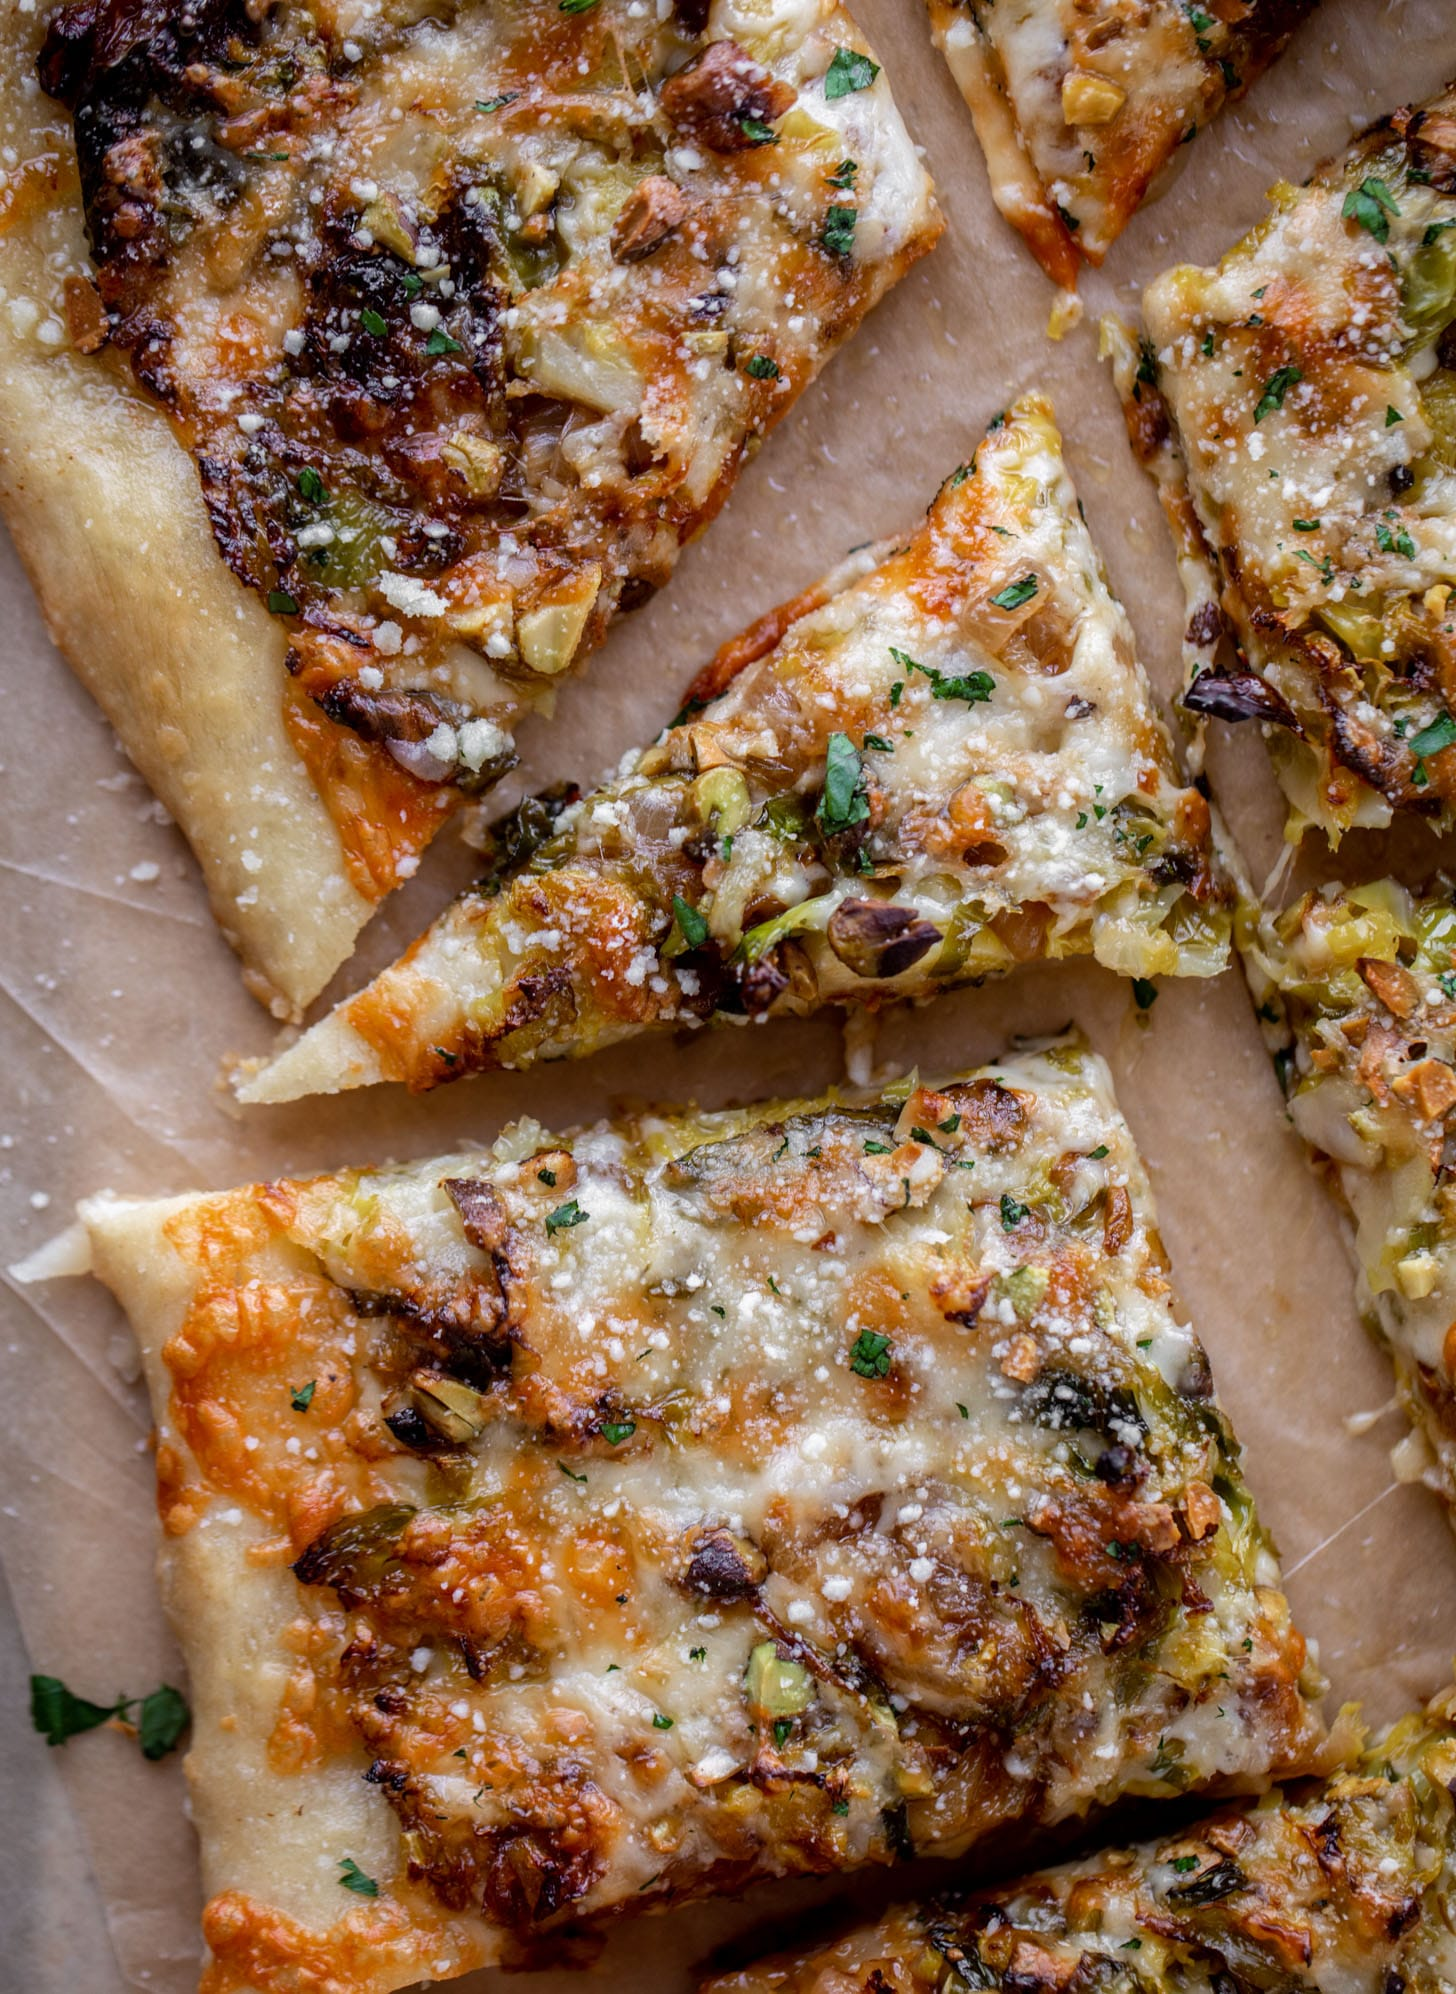 brussels, caramelized onion and pistachio pizza